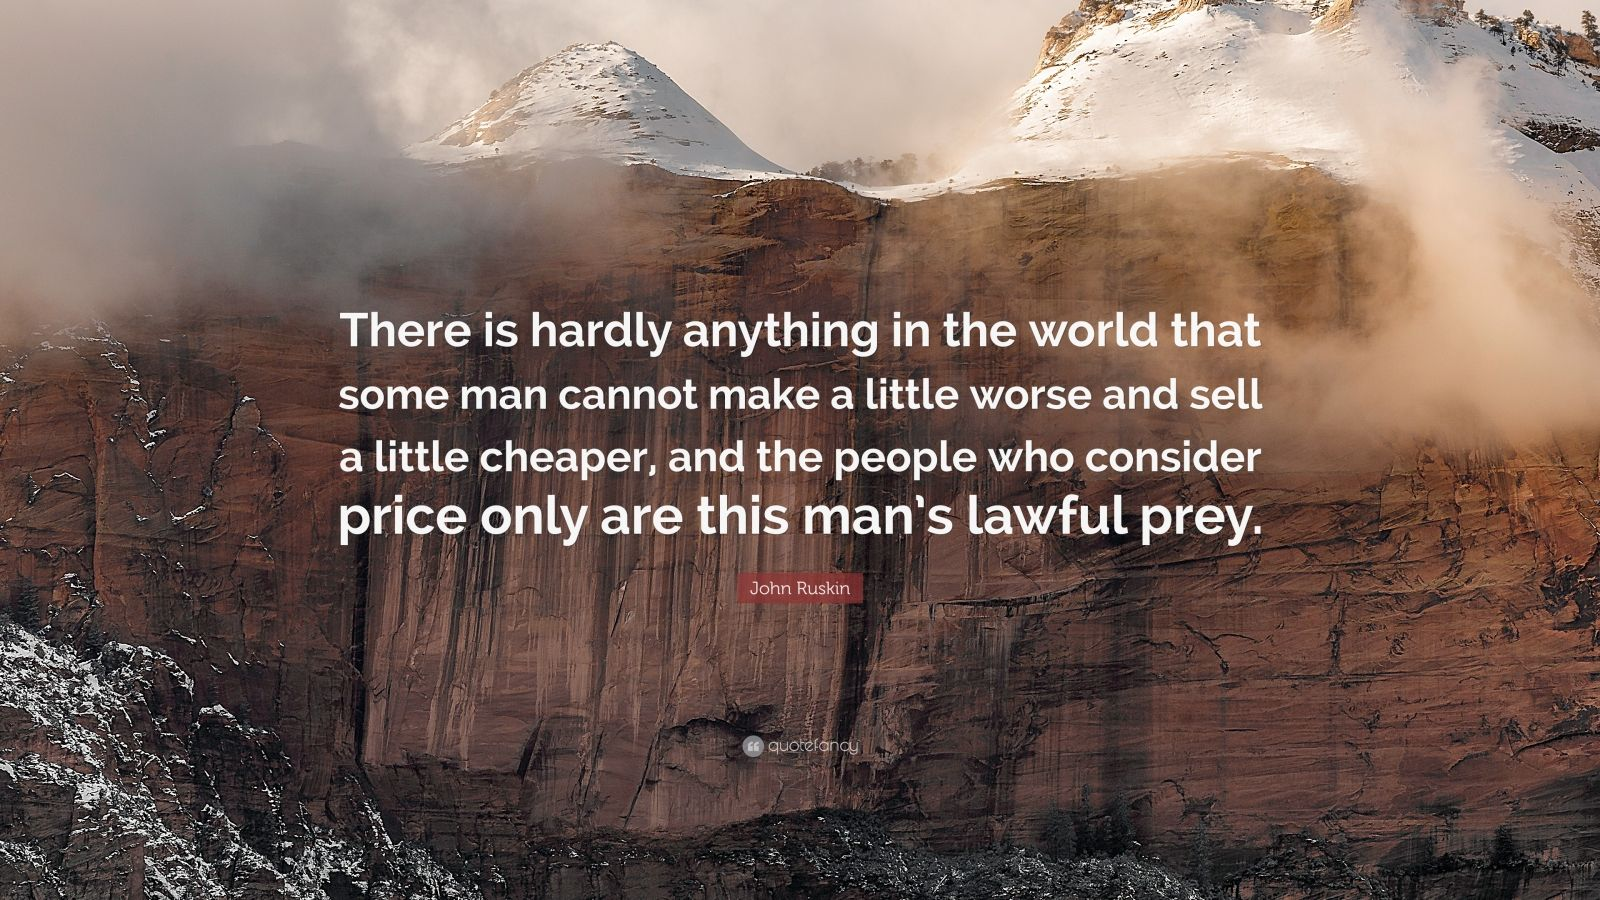 """John Ruskin Quote: """"There is hardly anything in the world that some man cannot make a little worse and sell a little cheaper, and the people who consider price only are this man's lawful prey."""""""